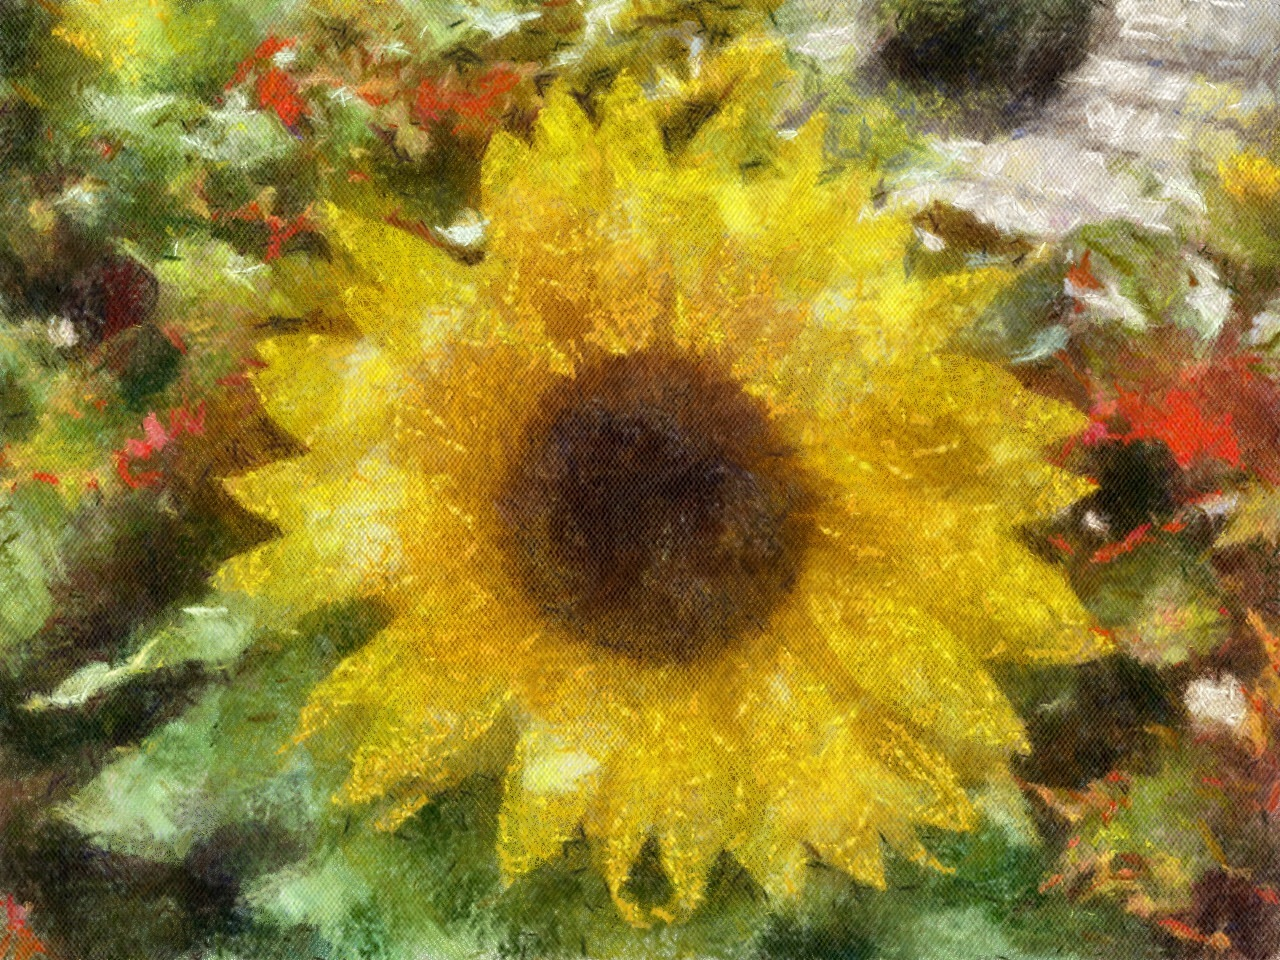 Sunflower by Peter McCormack